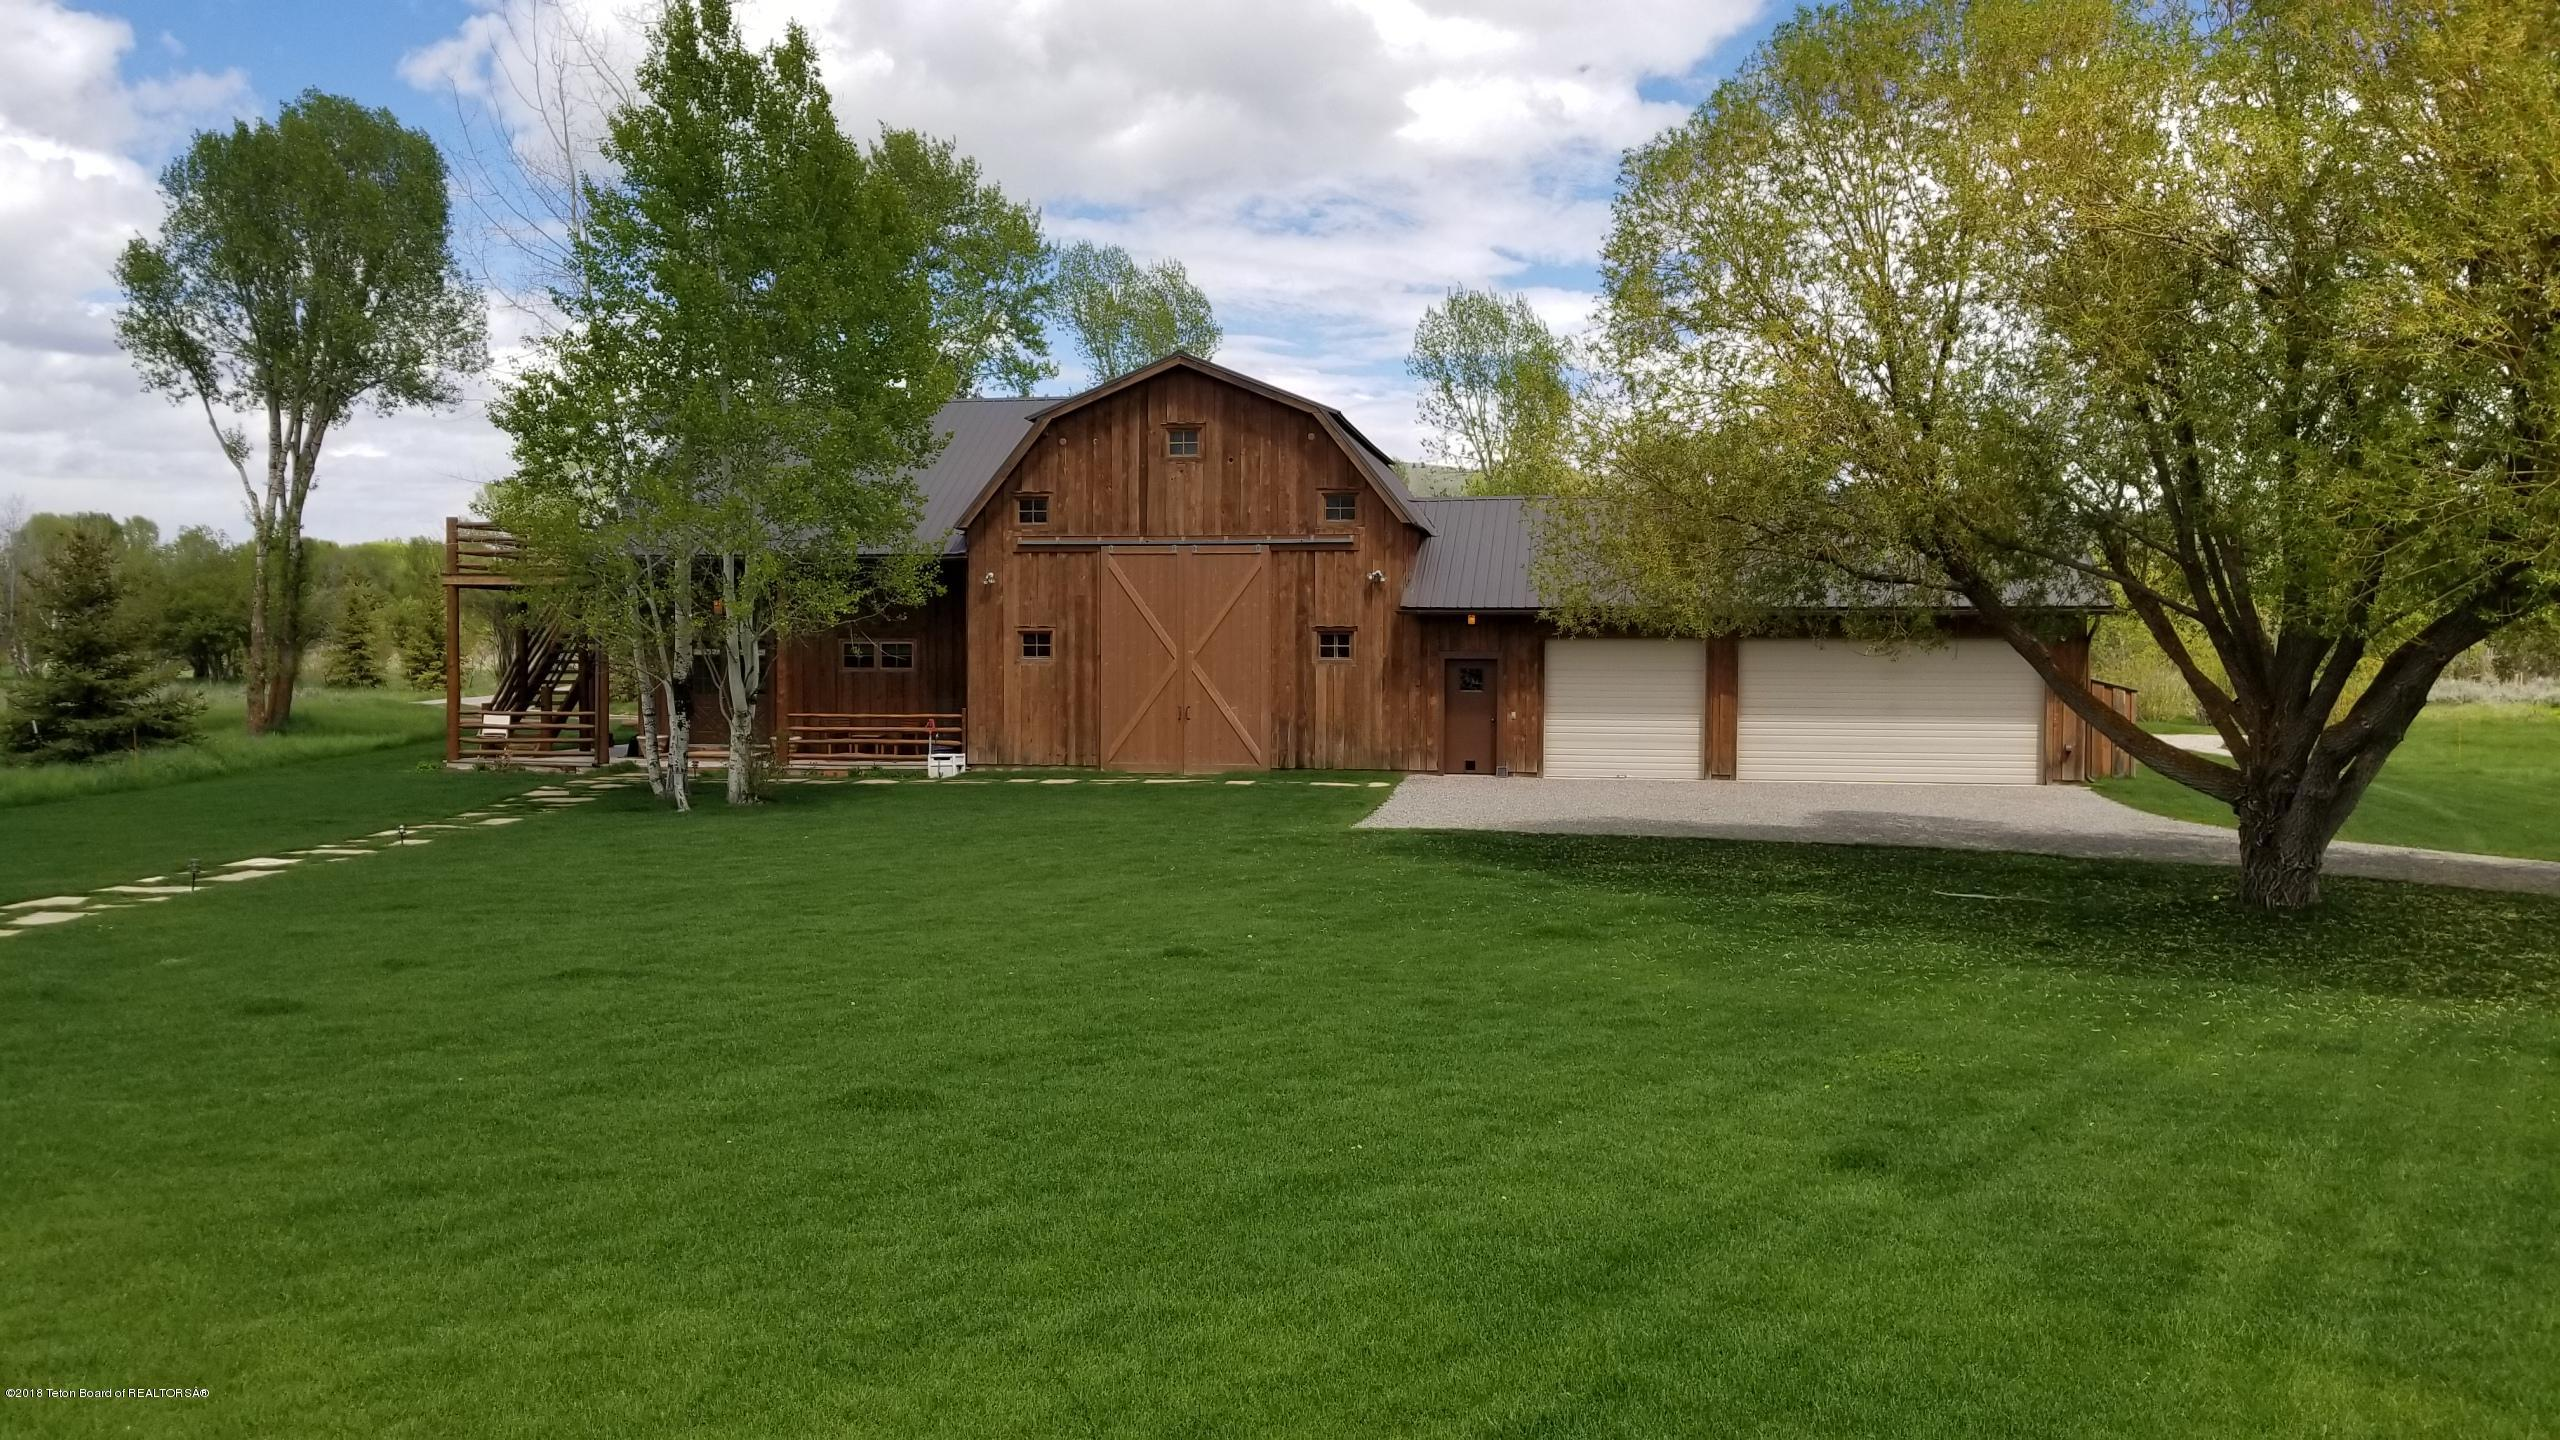 High Mountain Real Estate3300 N TRAPPER LN, Wilson, WY 83025